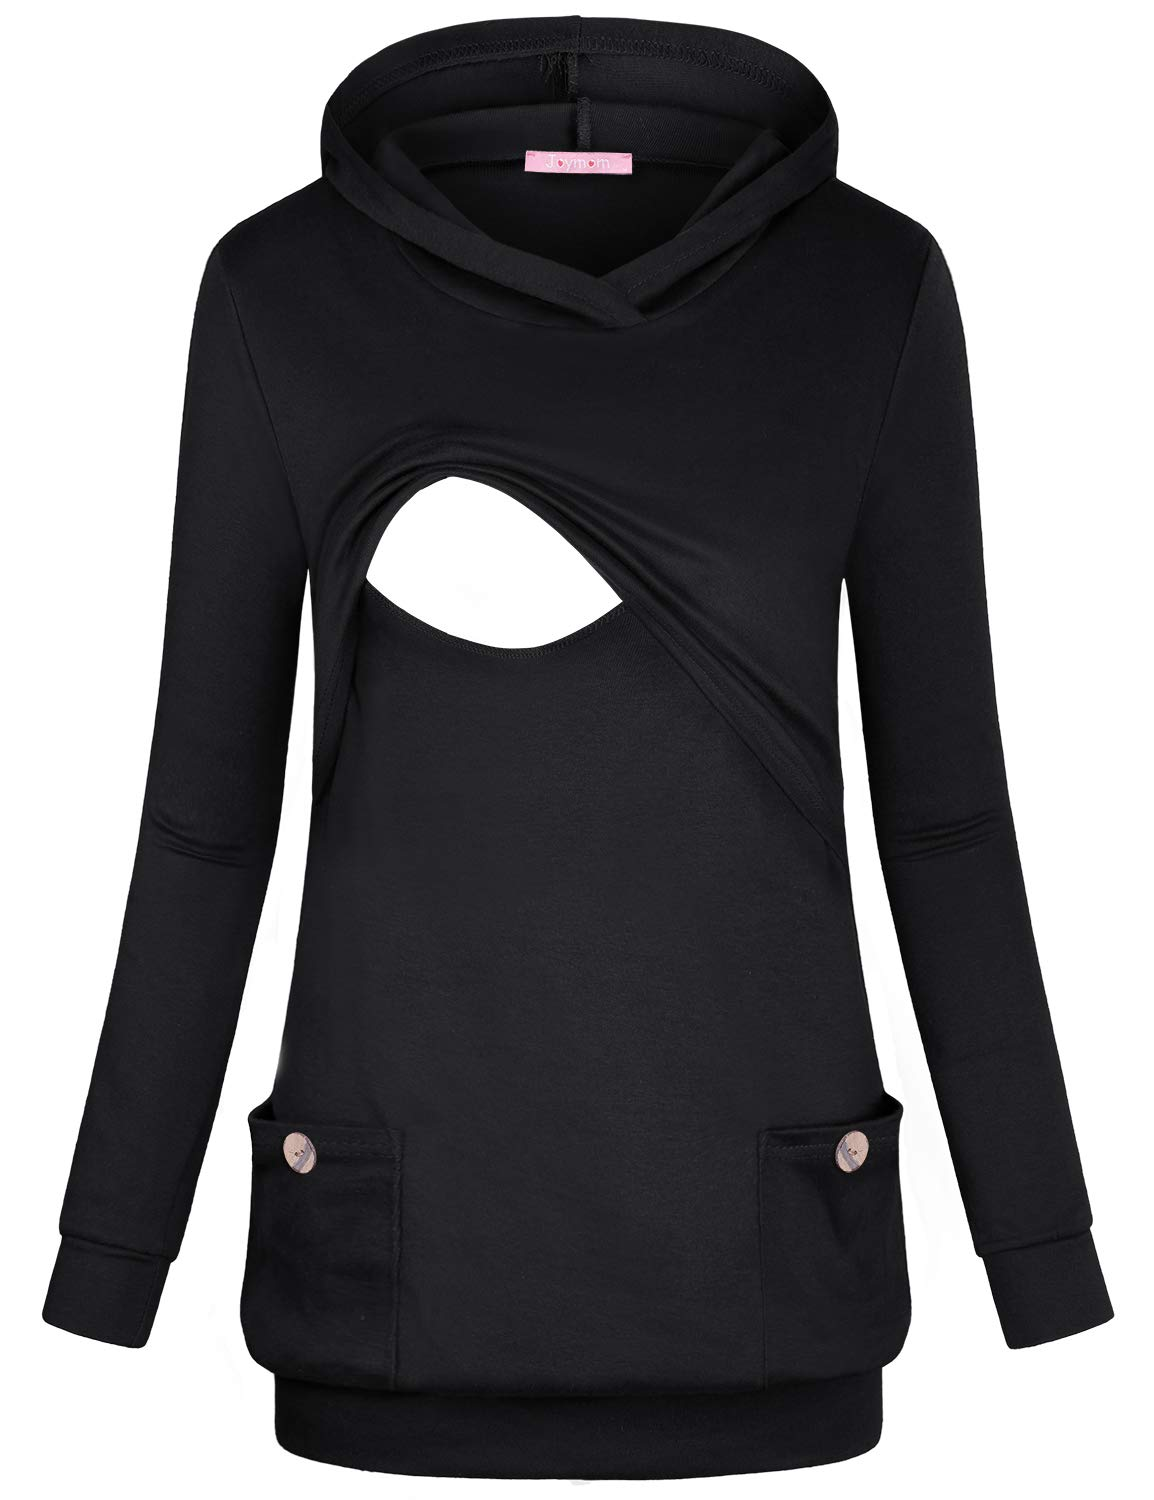 JOYMOM Maternity Sweatshirts Hoodie Women, Pregnancy V Neck Long Sleeve Pullover Hoodie Nursing Tops with Pockets Lightweight Silky Cotton Blend Breastfeeding Tunic Leisure Travel Wear Black XX-Large